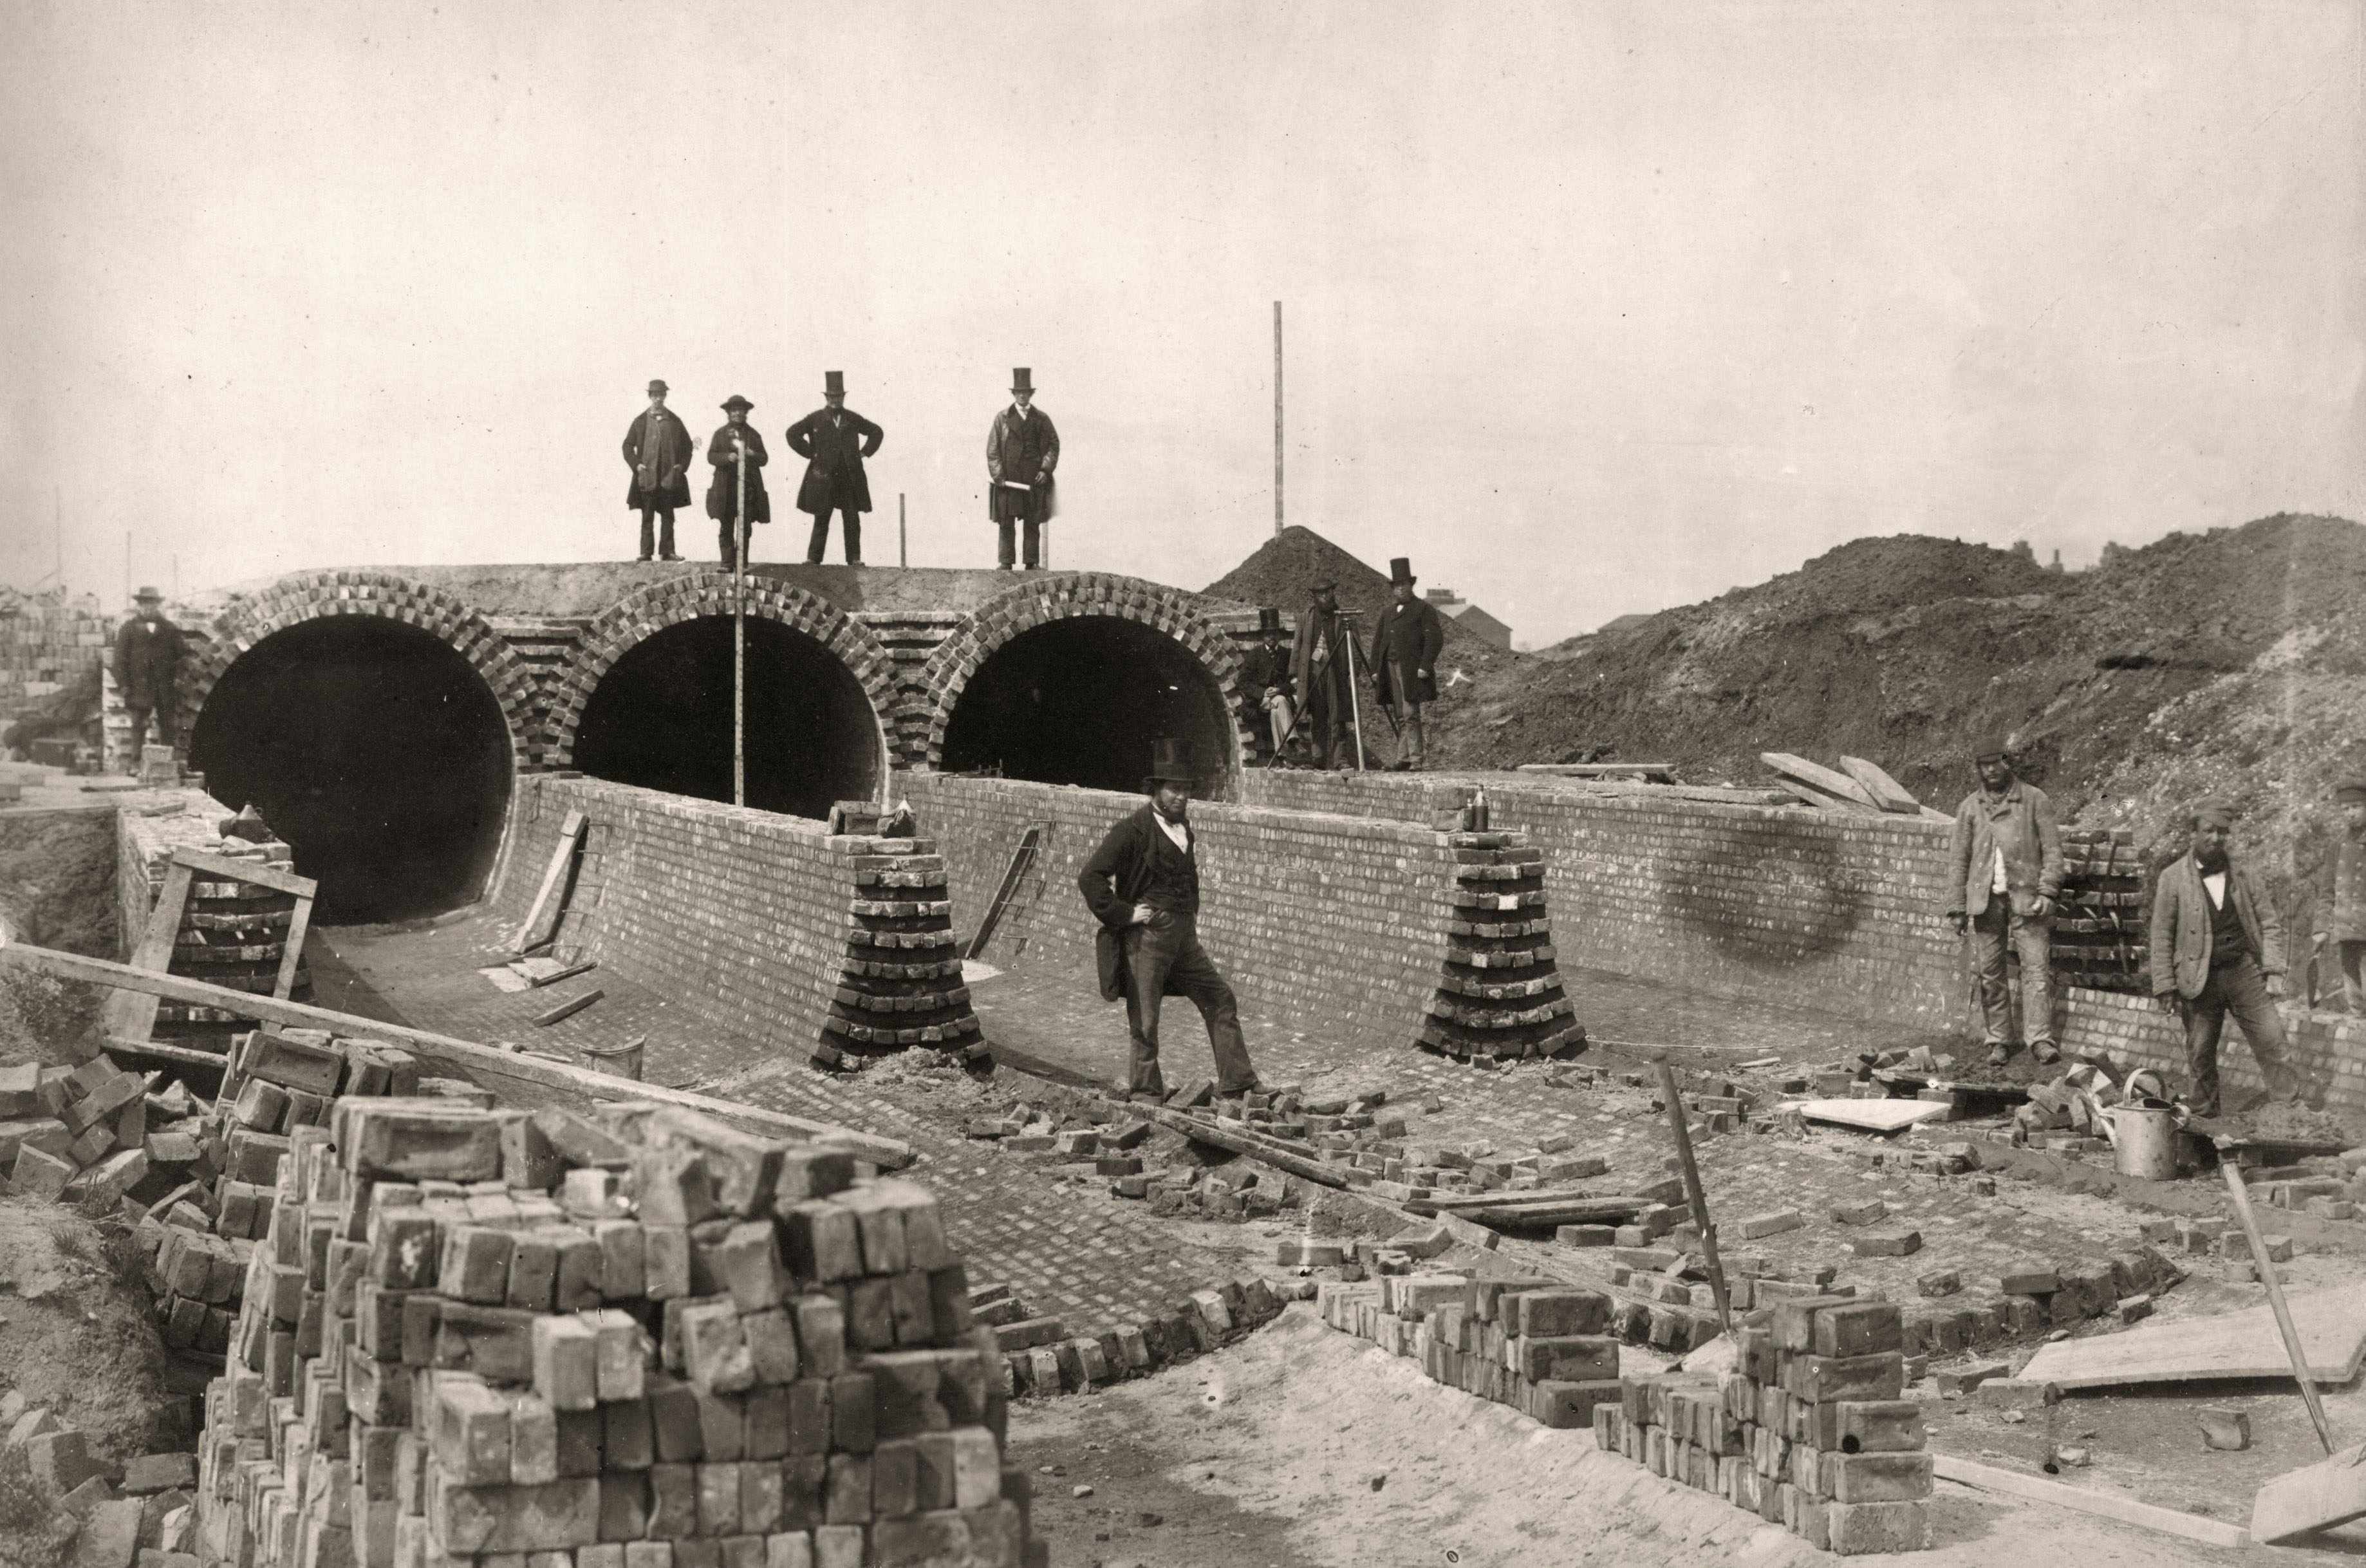 Sir Joseph William Bazalgette views the construction of the Northern Outfall sewer. He constructed London's drainage system and the Thames Embankment and was a pioneer of public health engineering. © Getty